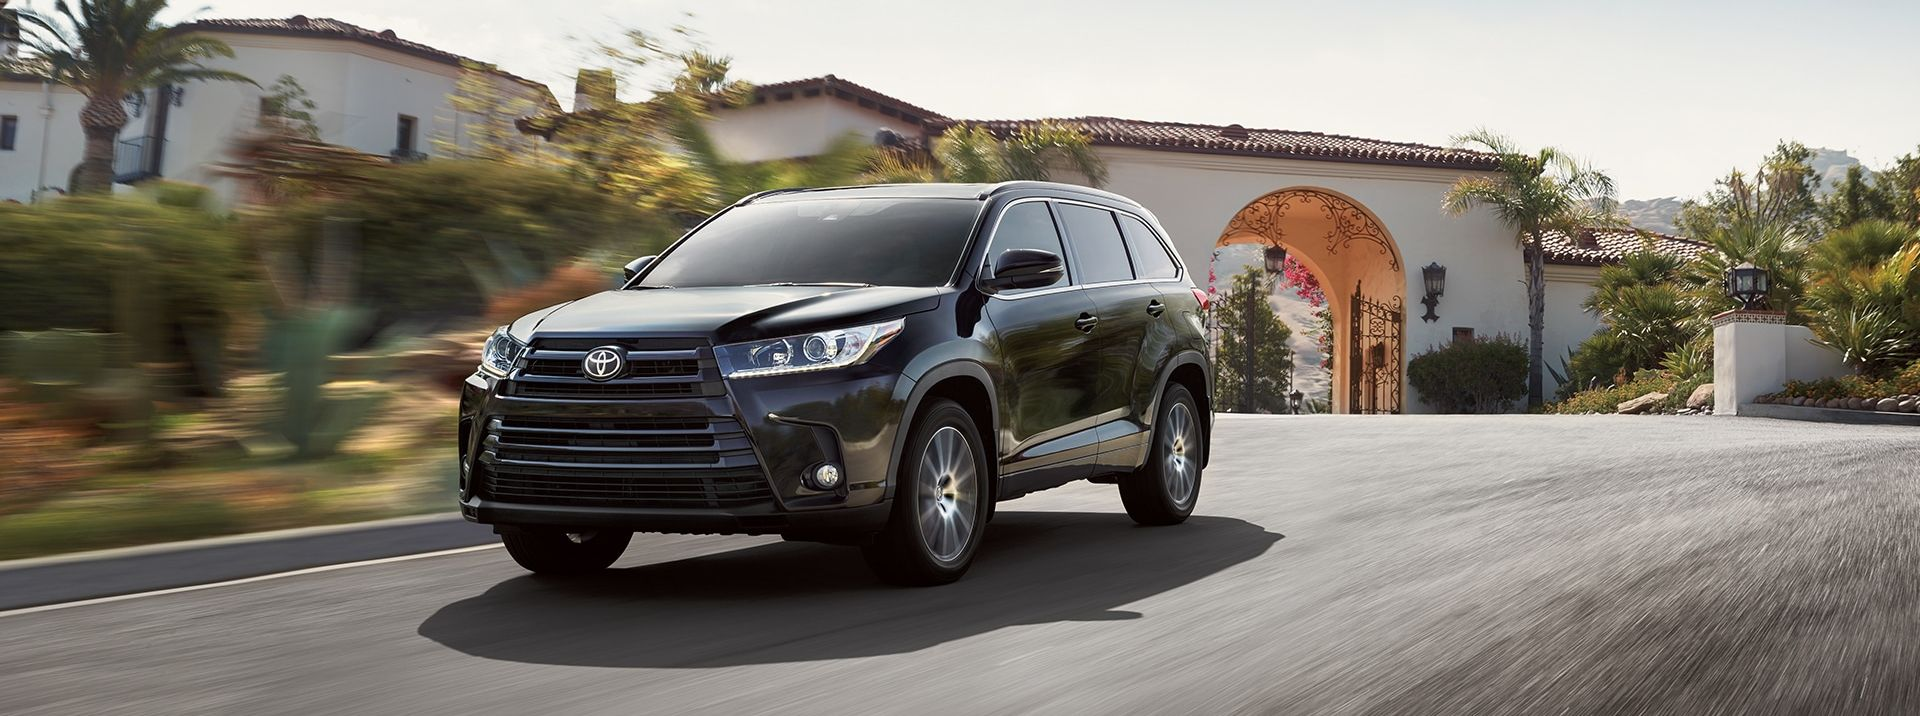 showroom and go over all of the exciting features of the 2017 toyota highlander for sale near greenwich ct we look forward to meeting you soon